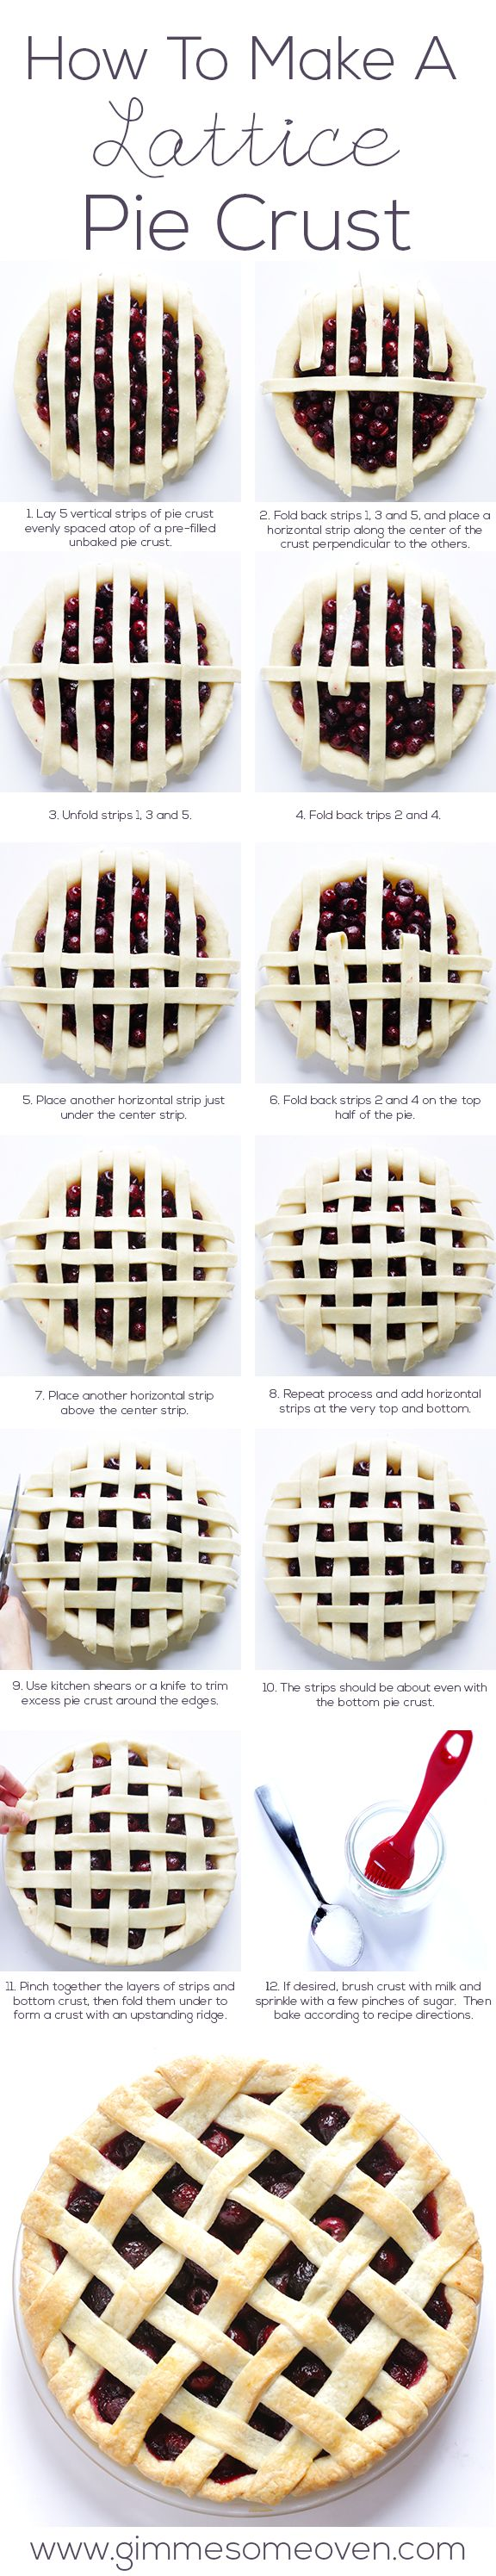 Pinterest's Mithya Srinivasan is learning how to make a lattice pie crust this year.